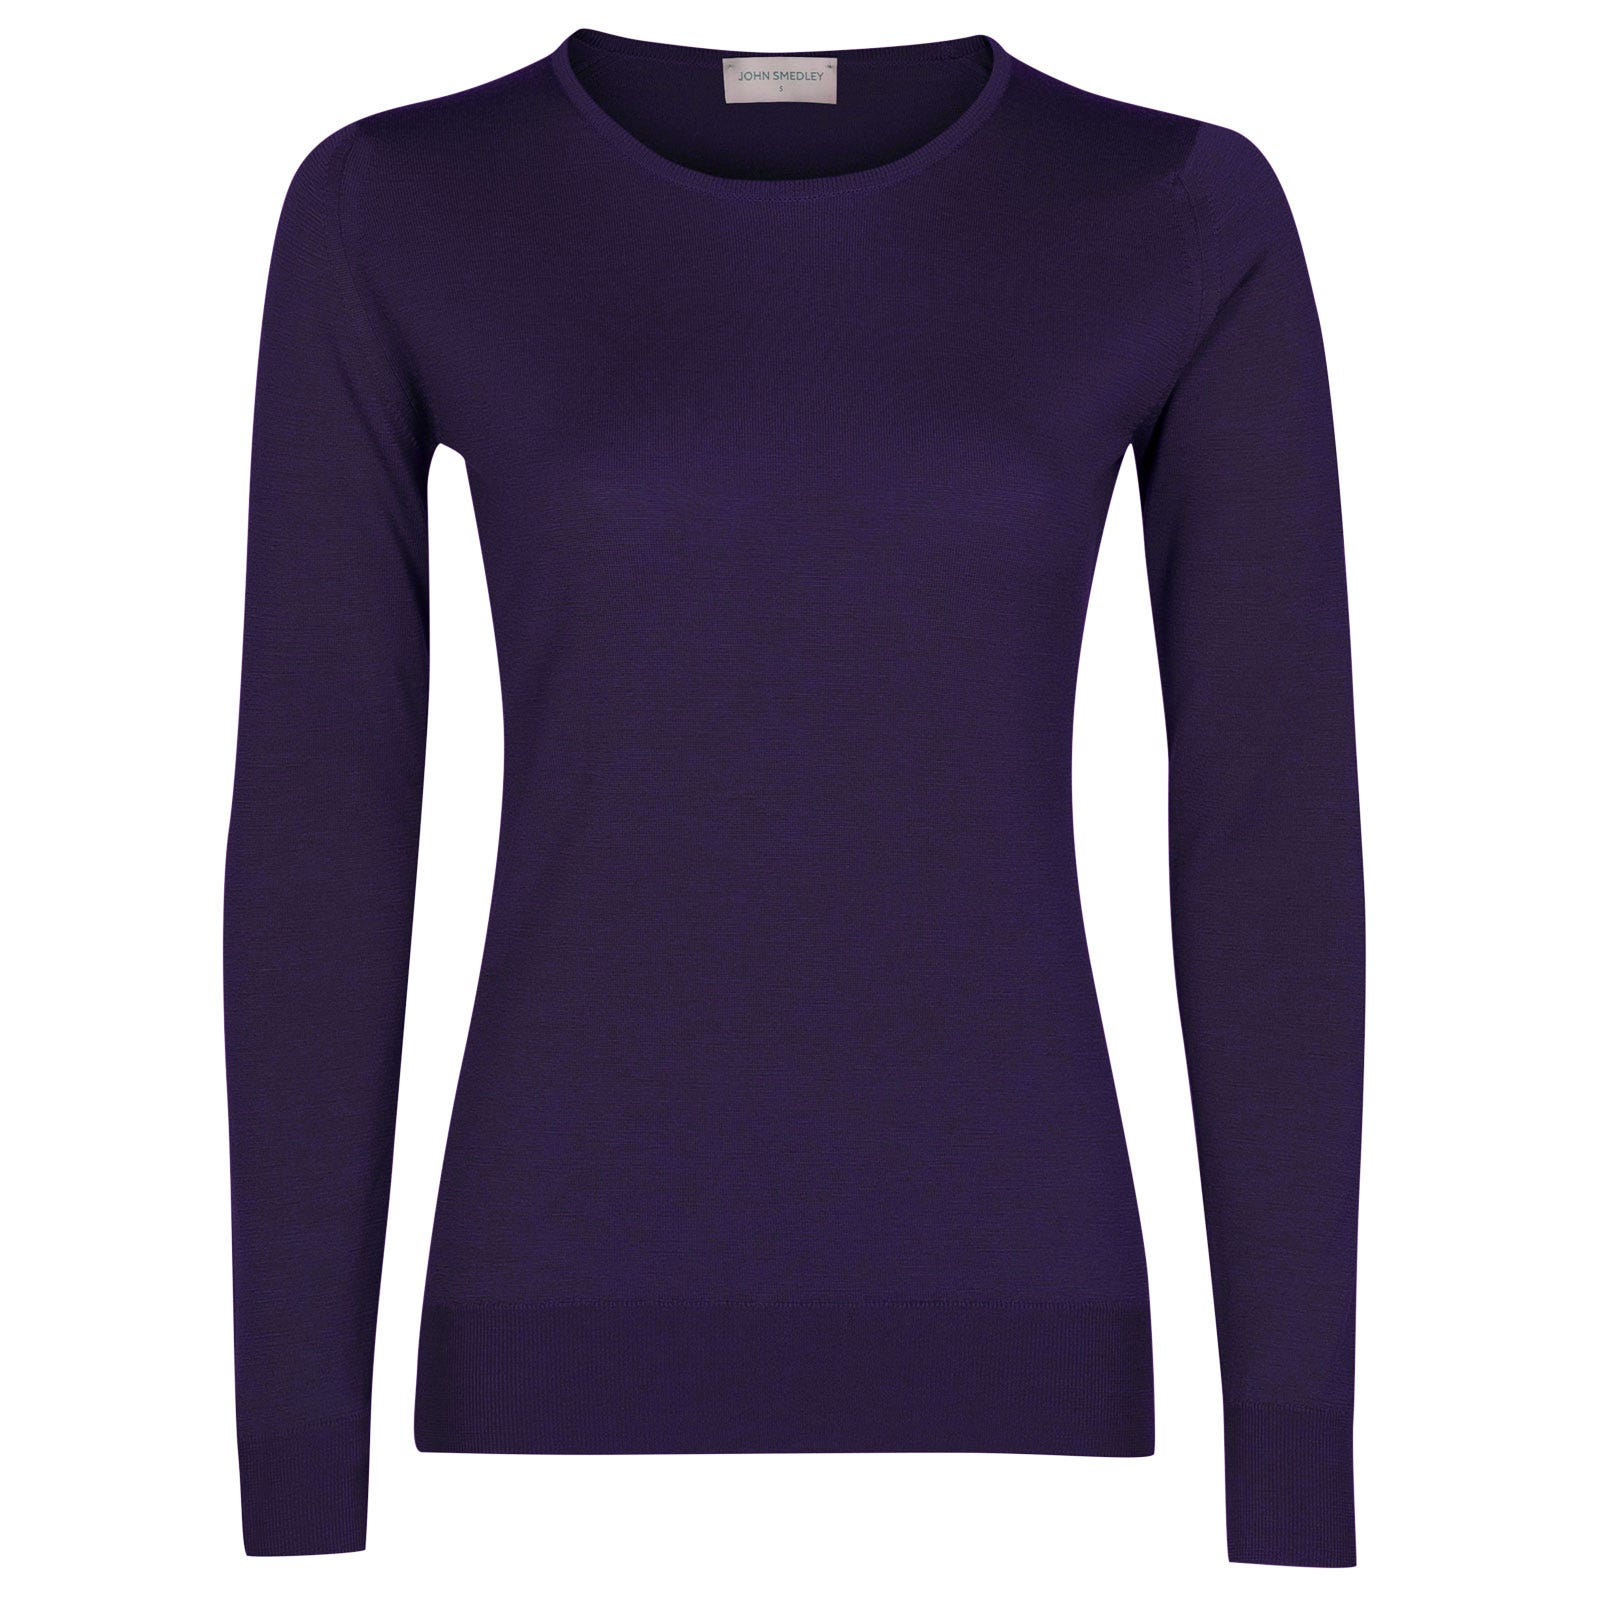 John Smedley geranium Merino Wool Sweater in Elderberry Purple-XL